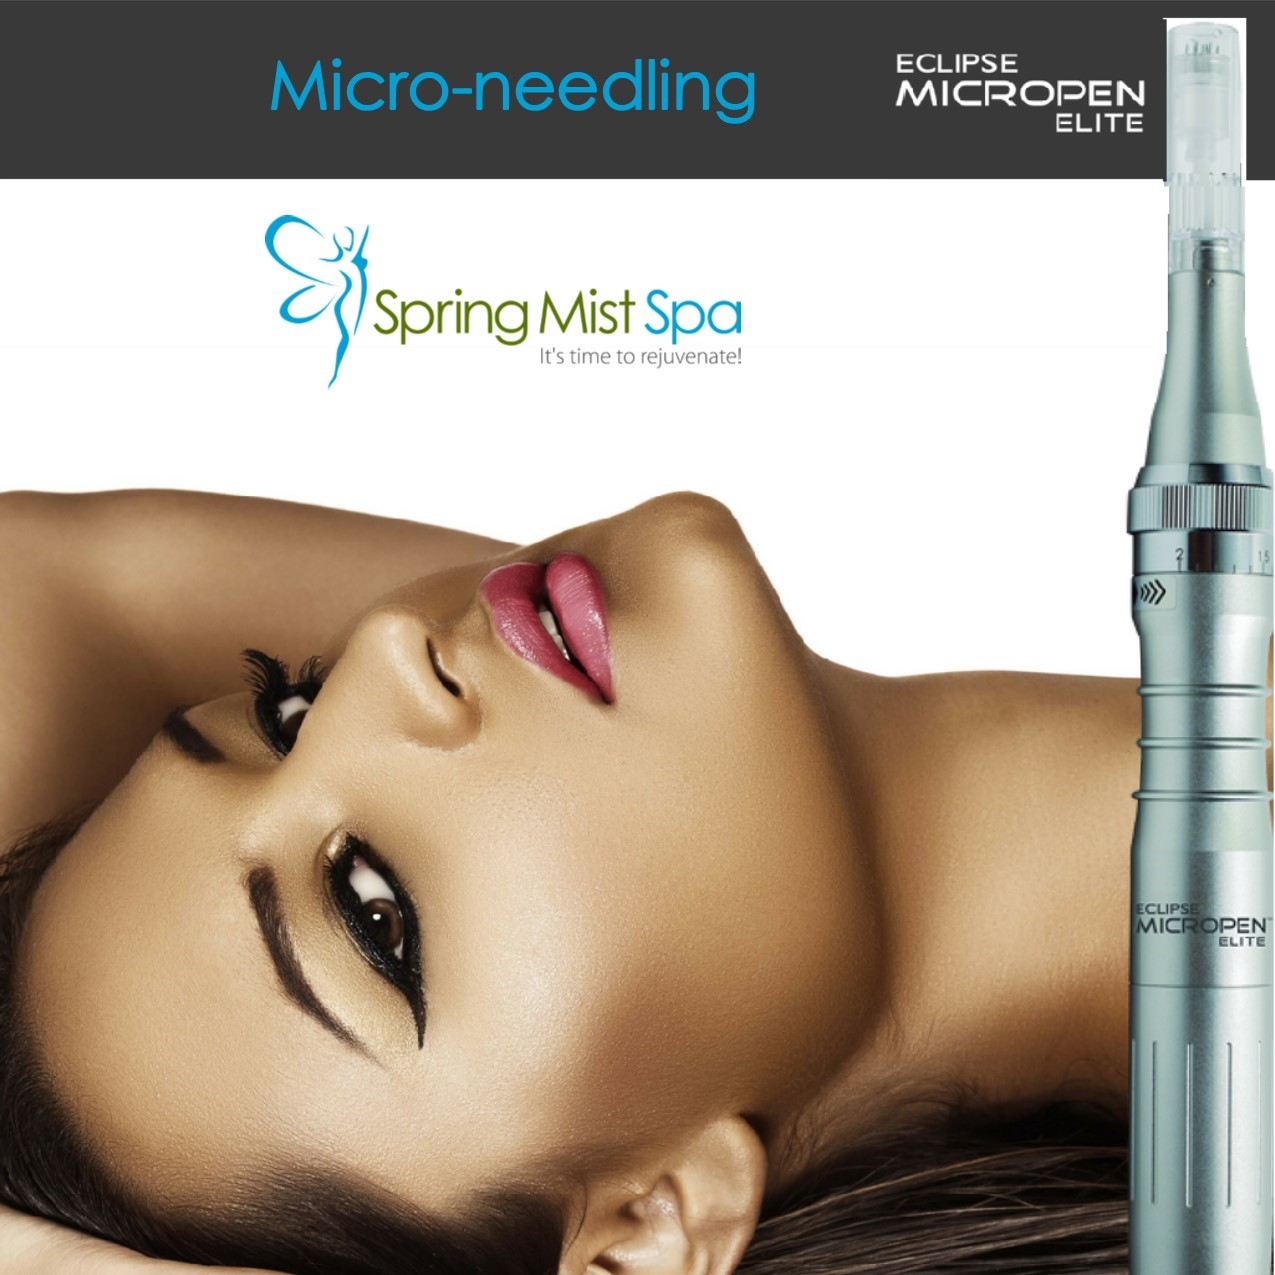 Spring Mist Milton Spa Specials - Get rid of wrinkles, fine lines, acne scars with microneedling at Spring Mist Spa Milton